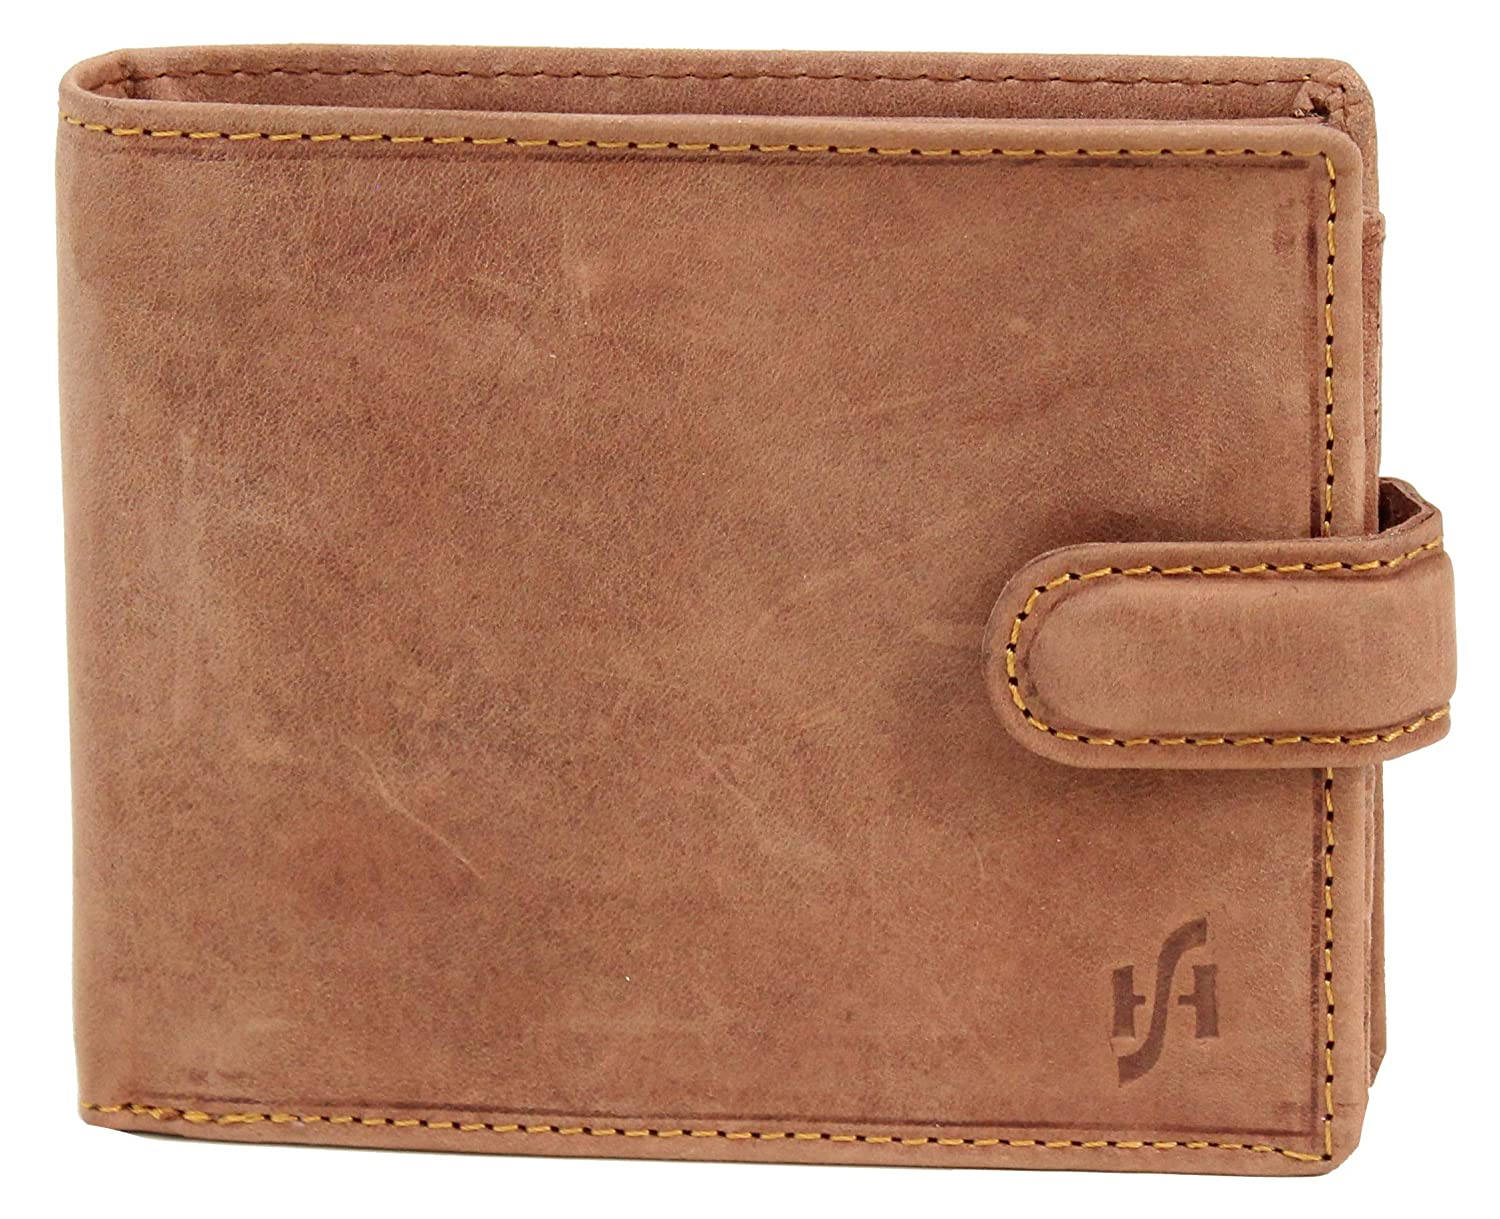 STARHIDE Mens RFID Blocking Genuine Leather Twin ID Card and Coin Pocket Wallet 1213